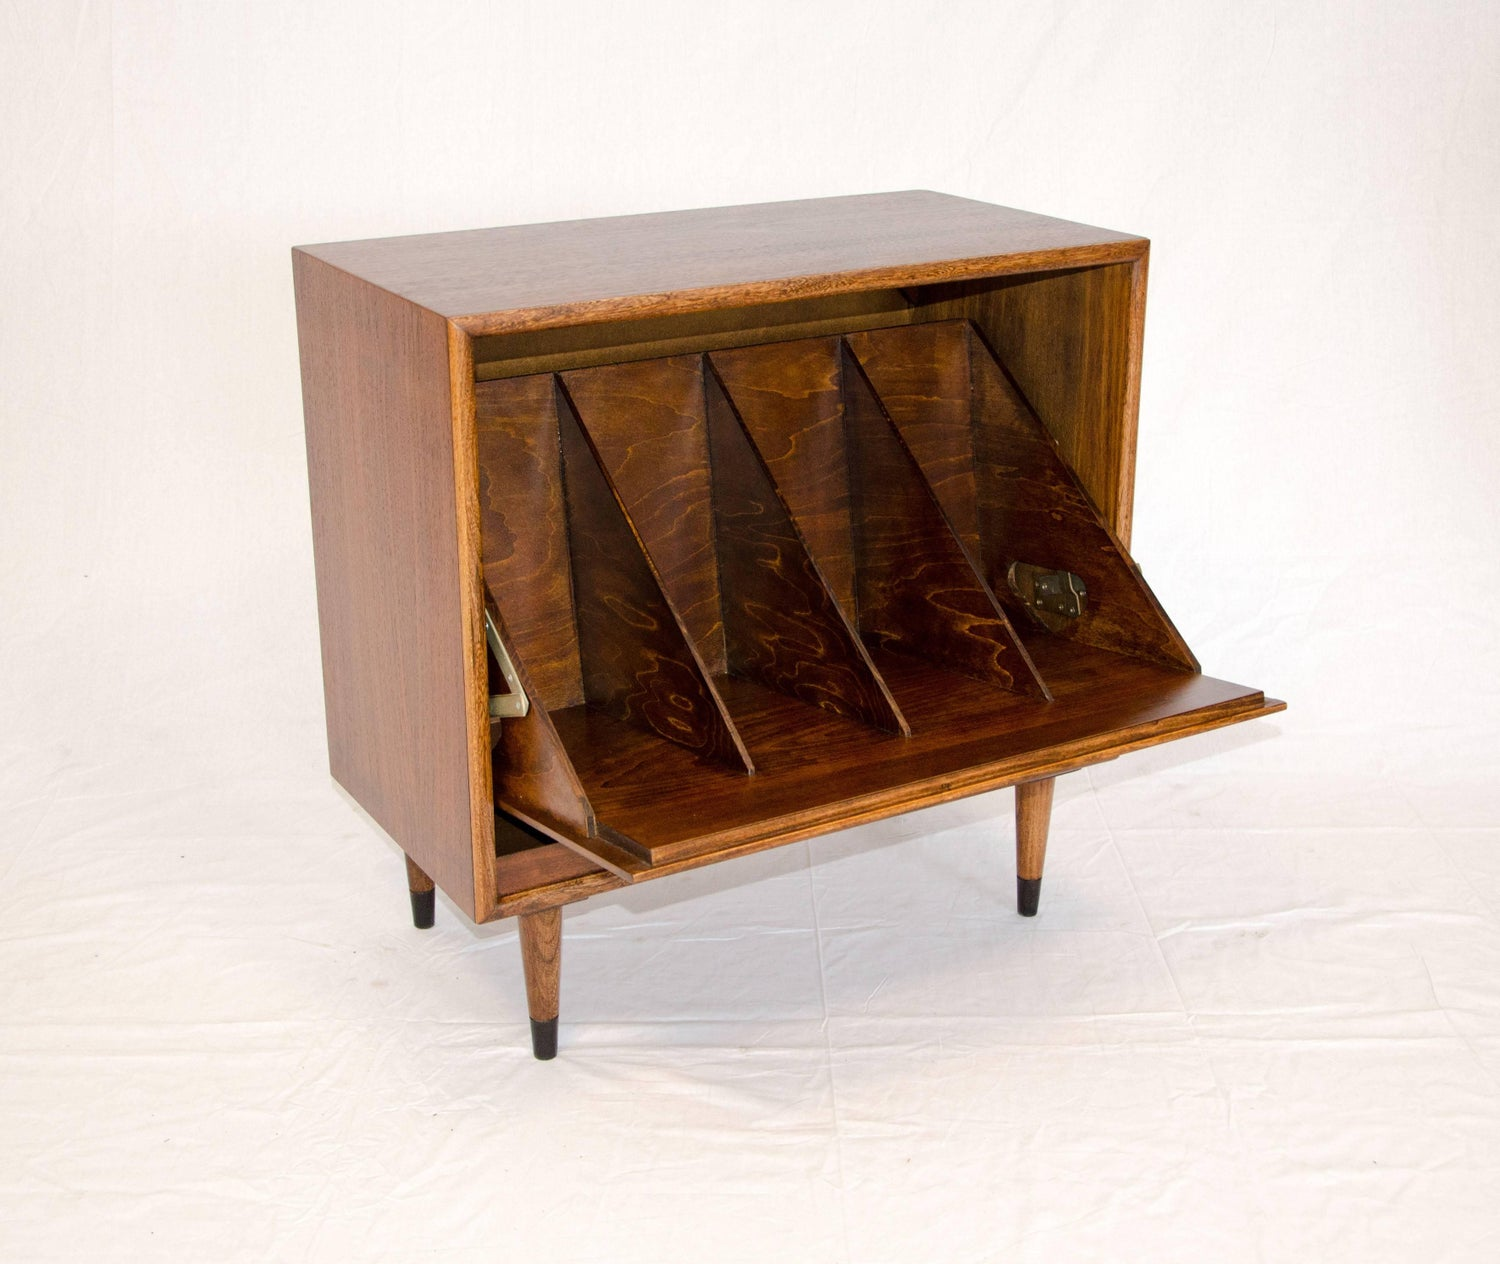 how furniture cabinet vintage is design console an brands re record player attractive table worth media ideas antique much old new